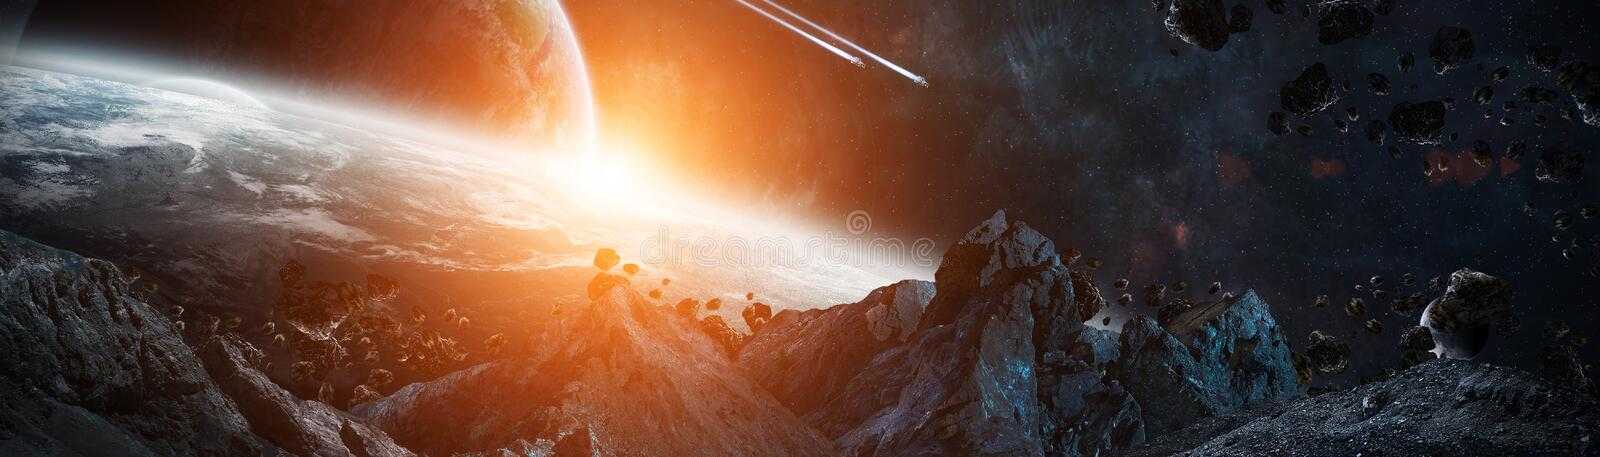 Panoramic view of planets in distant solar system 3D rendering e royalty free illustration